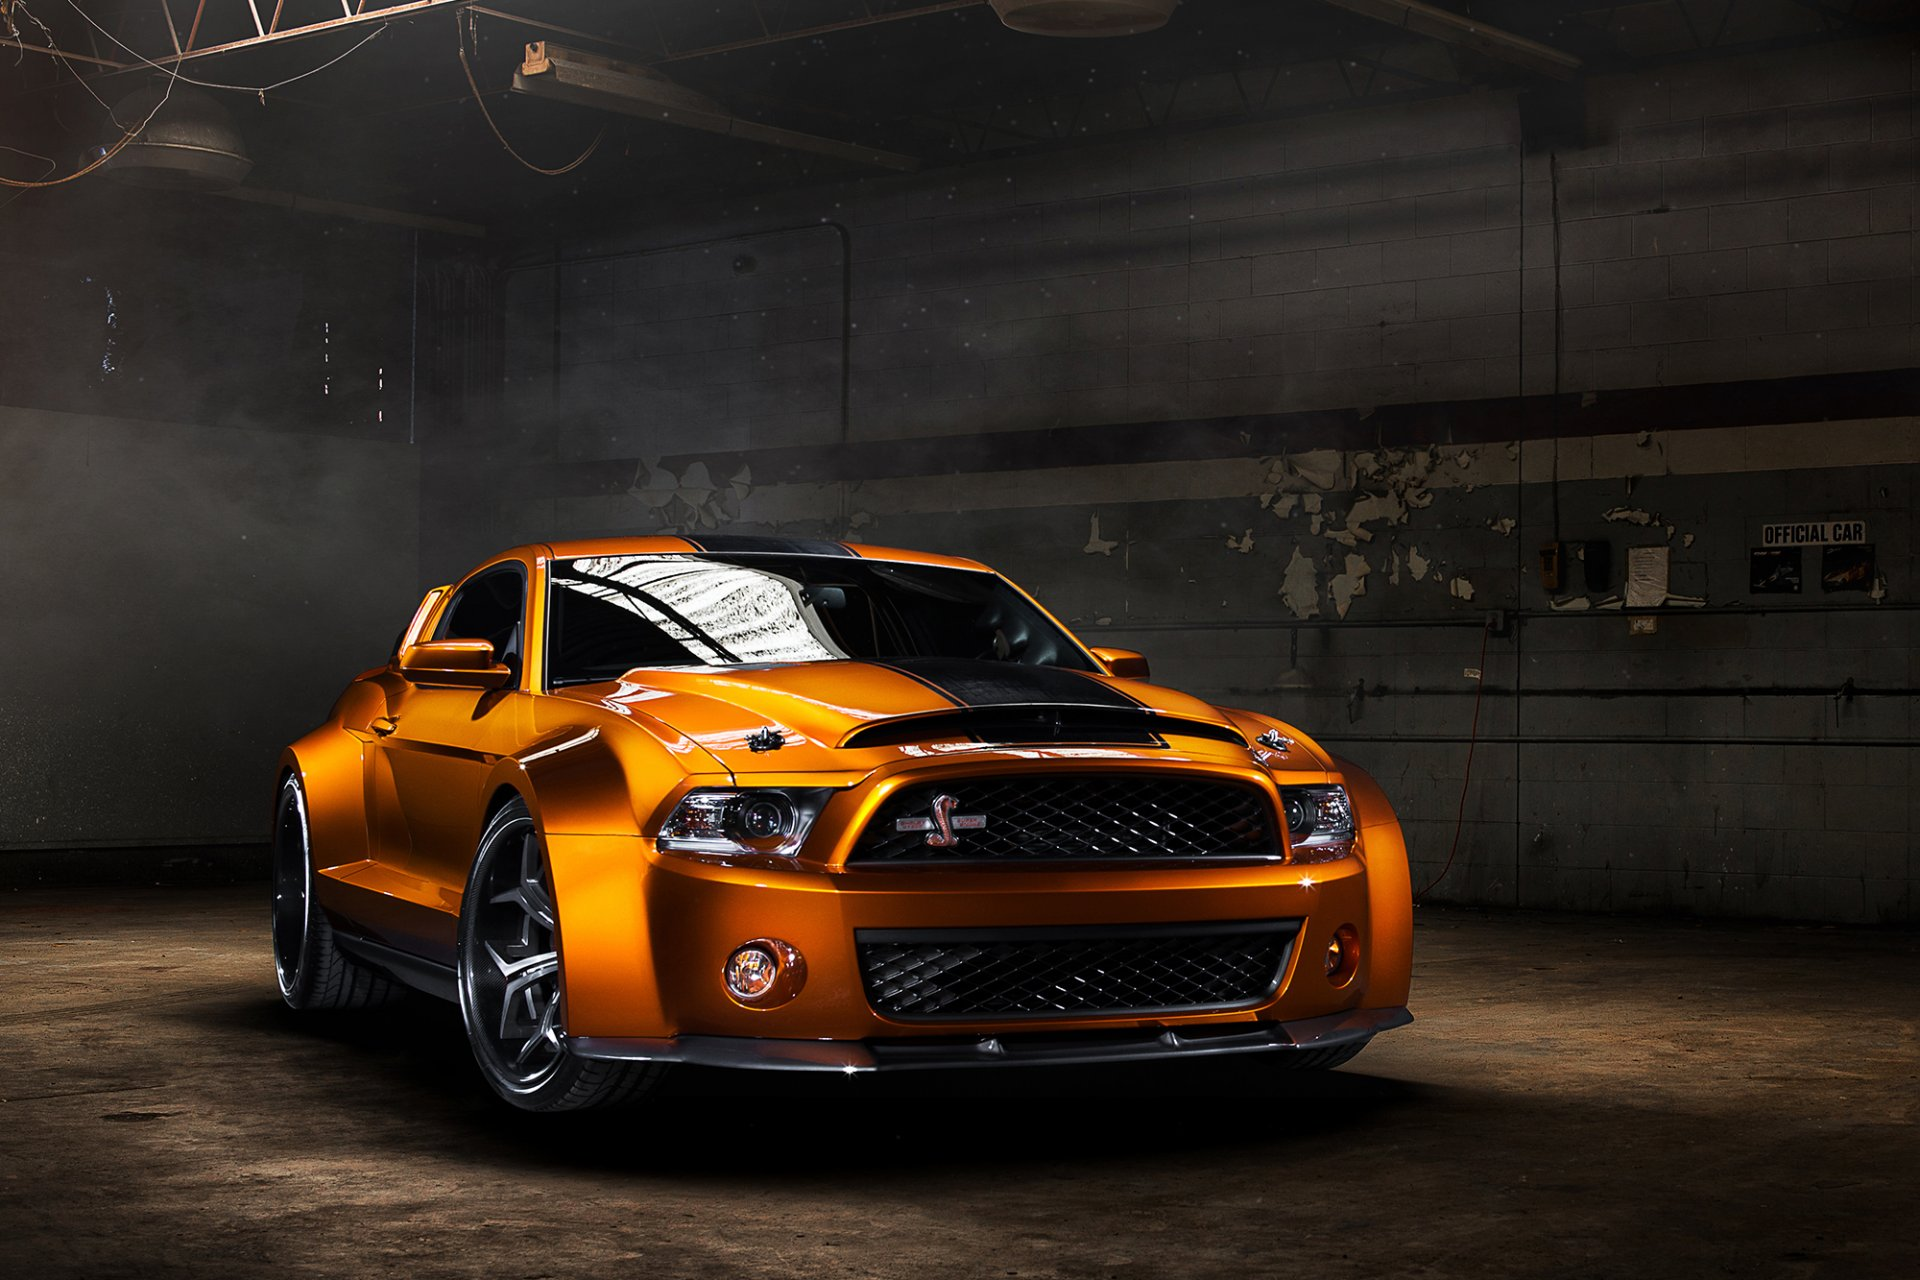 Ford Mustang Shelby GT500 Super Snake Ultimate Auto Vellano Wheels orange front muscle car мускул кар обвес